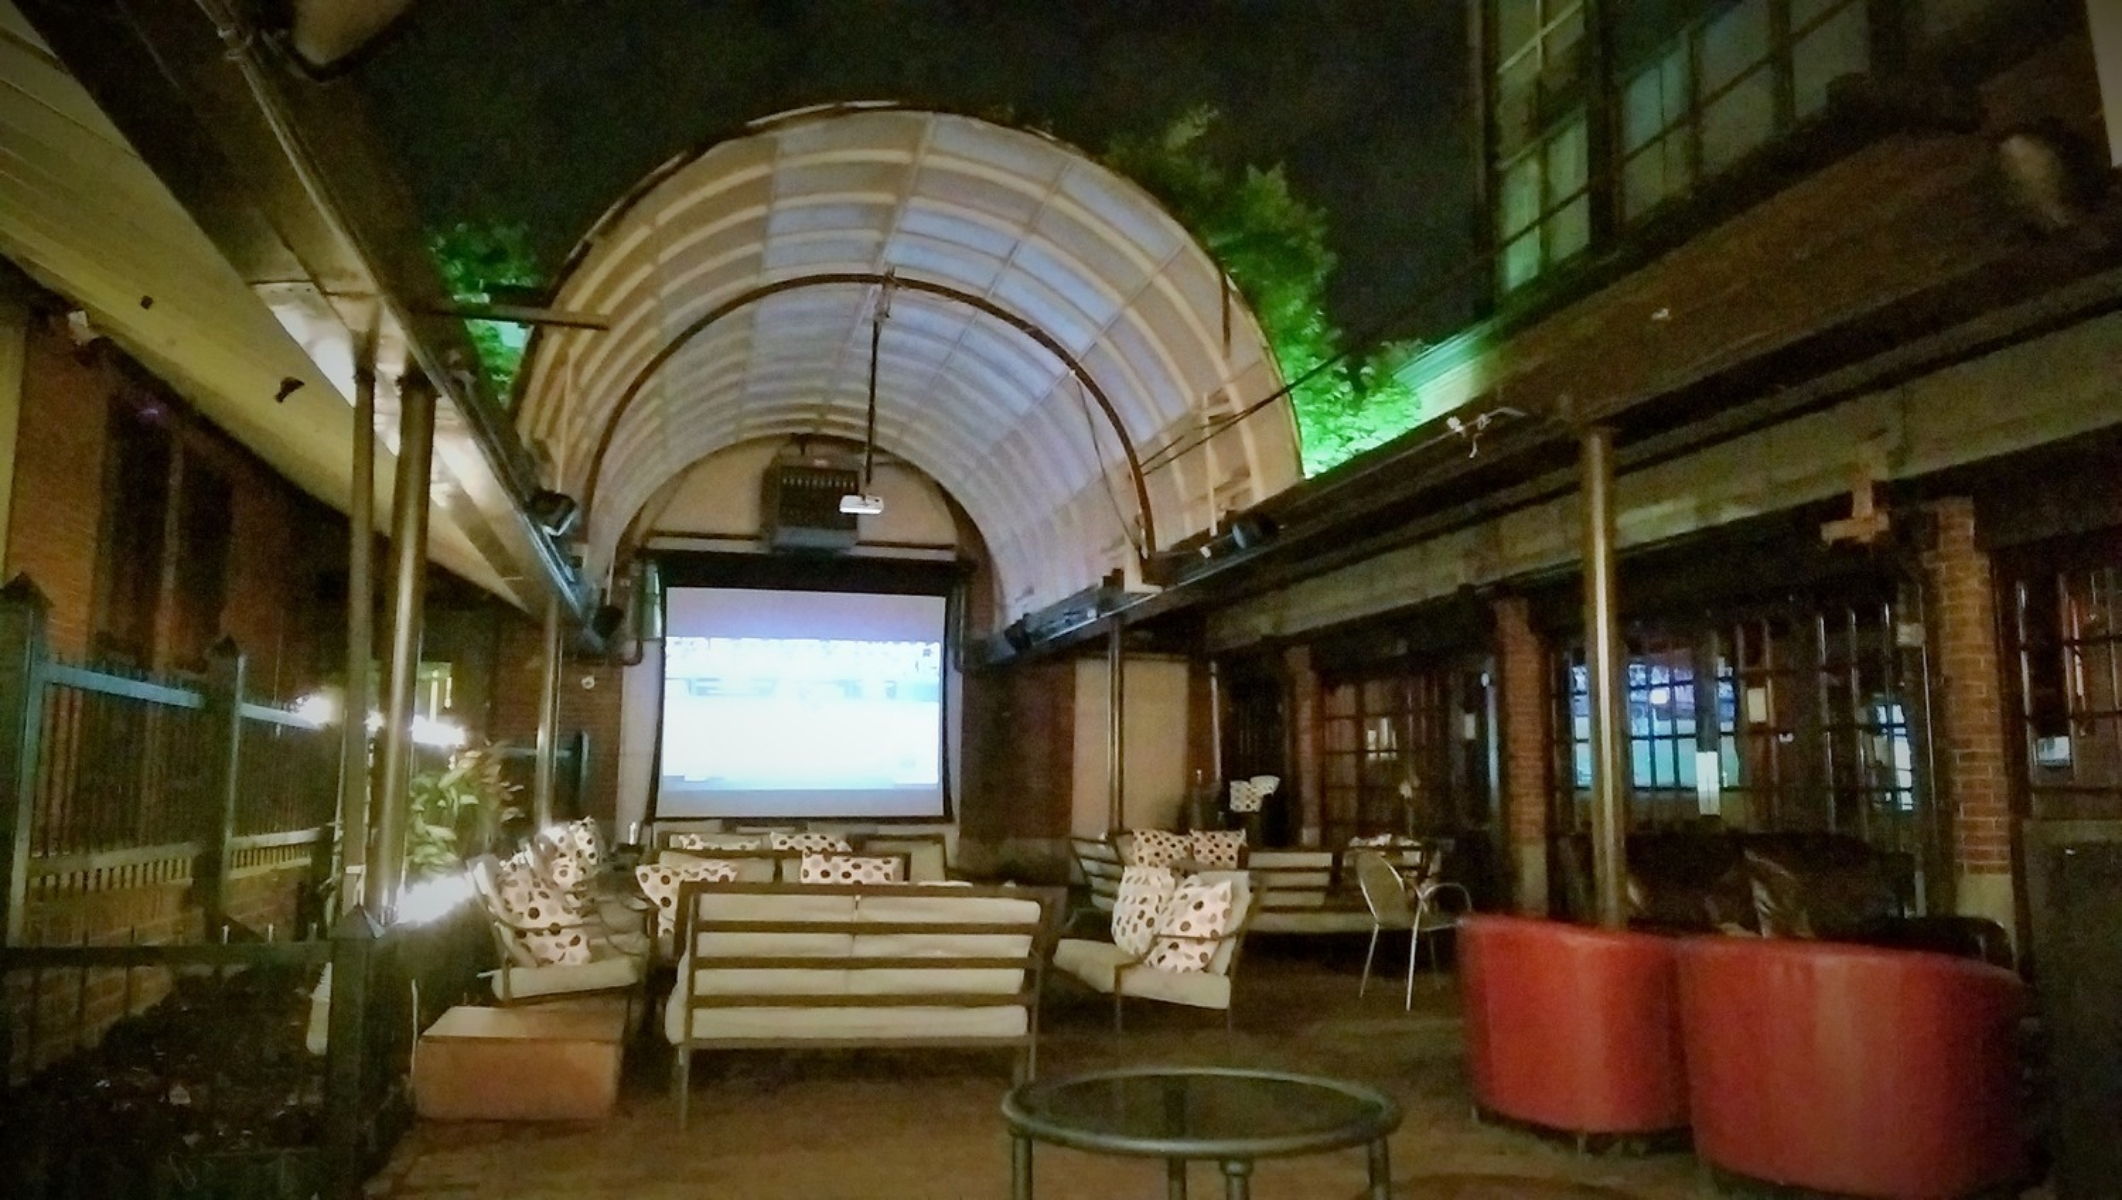 Michael's Cigar Bar is ready to assist you in providing your guests an event to remember.